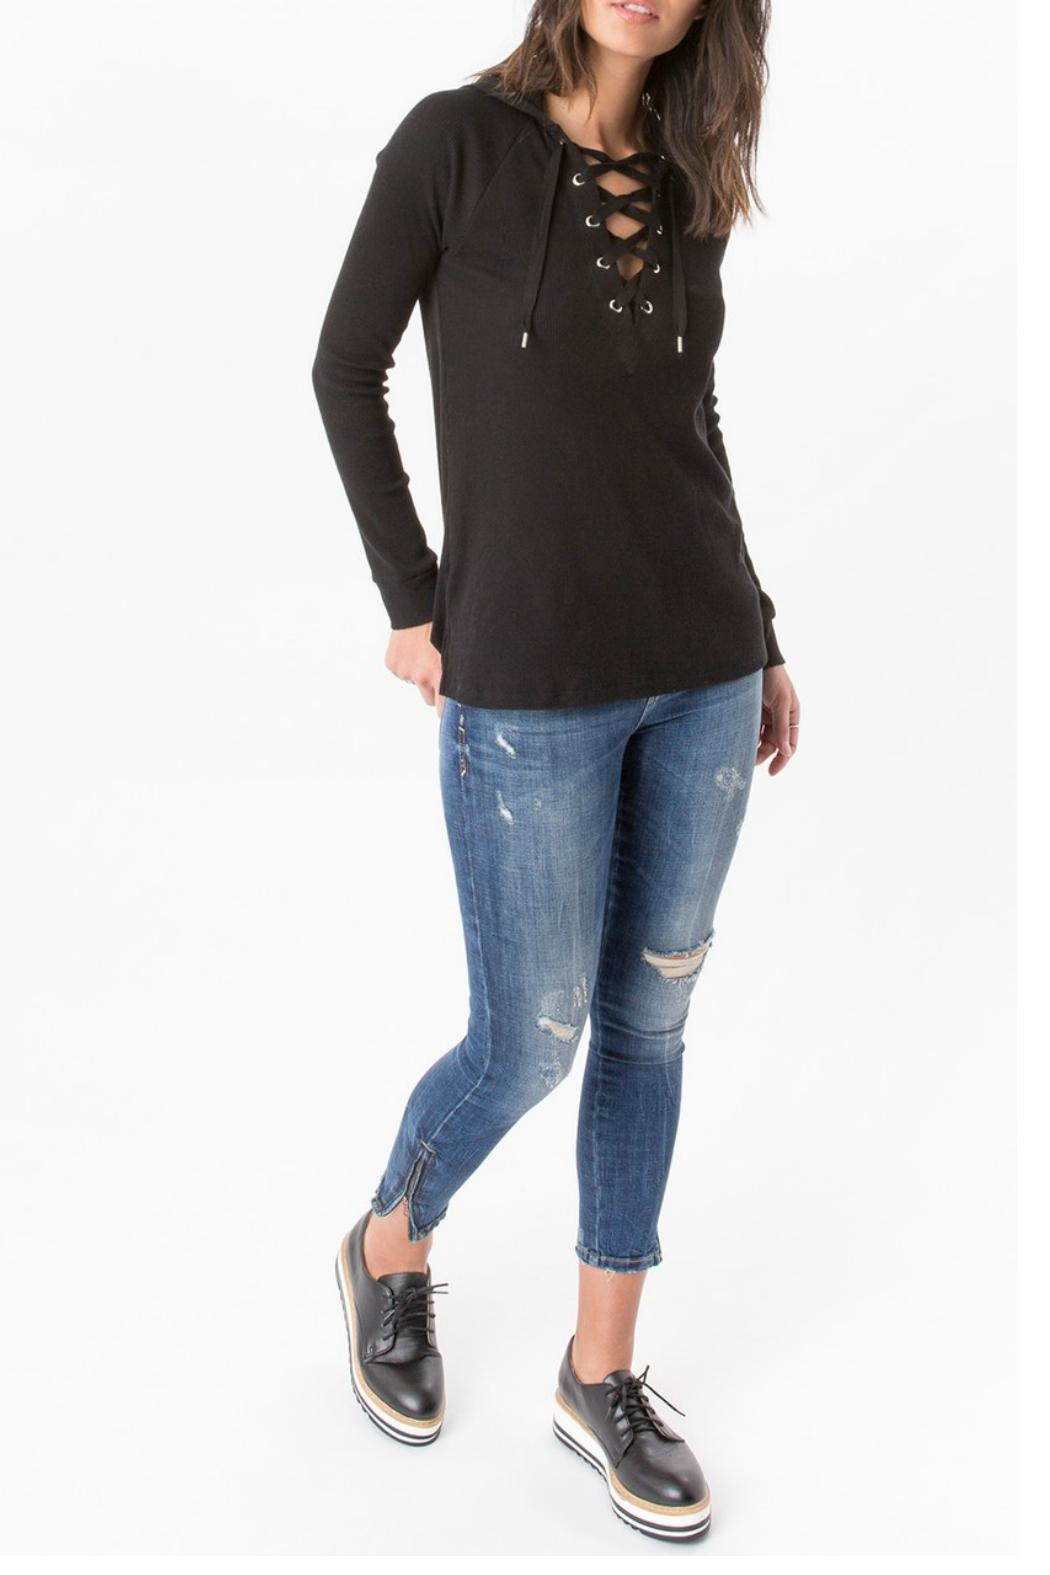 z supply Thermal Lace Up Sweater - Back Cropped Image